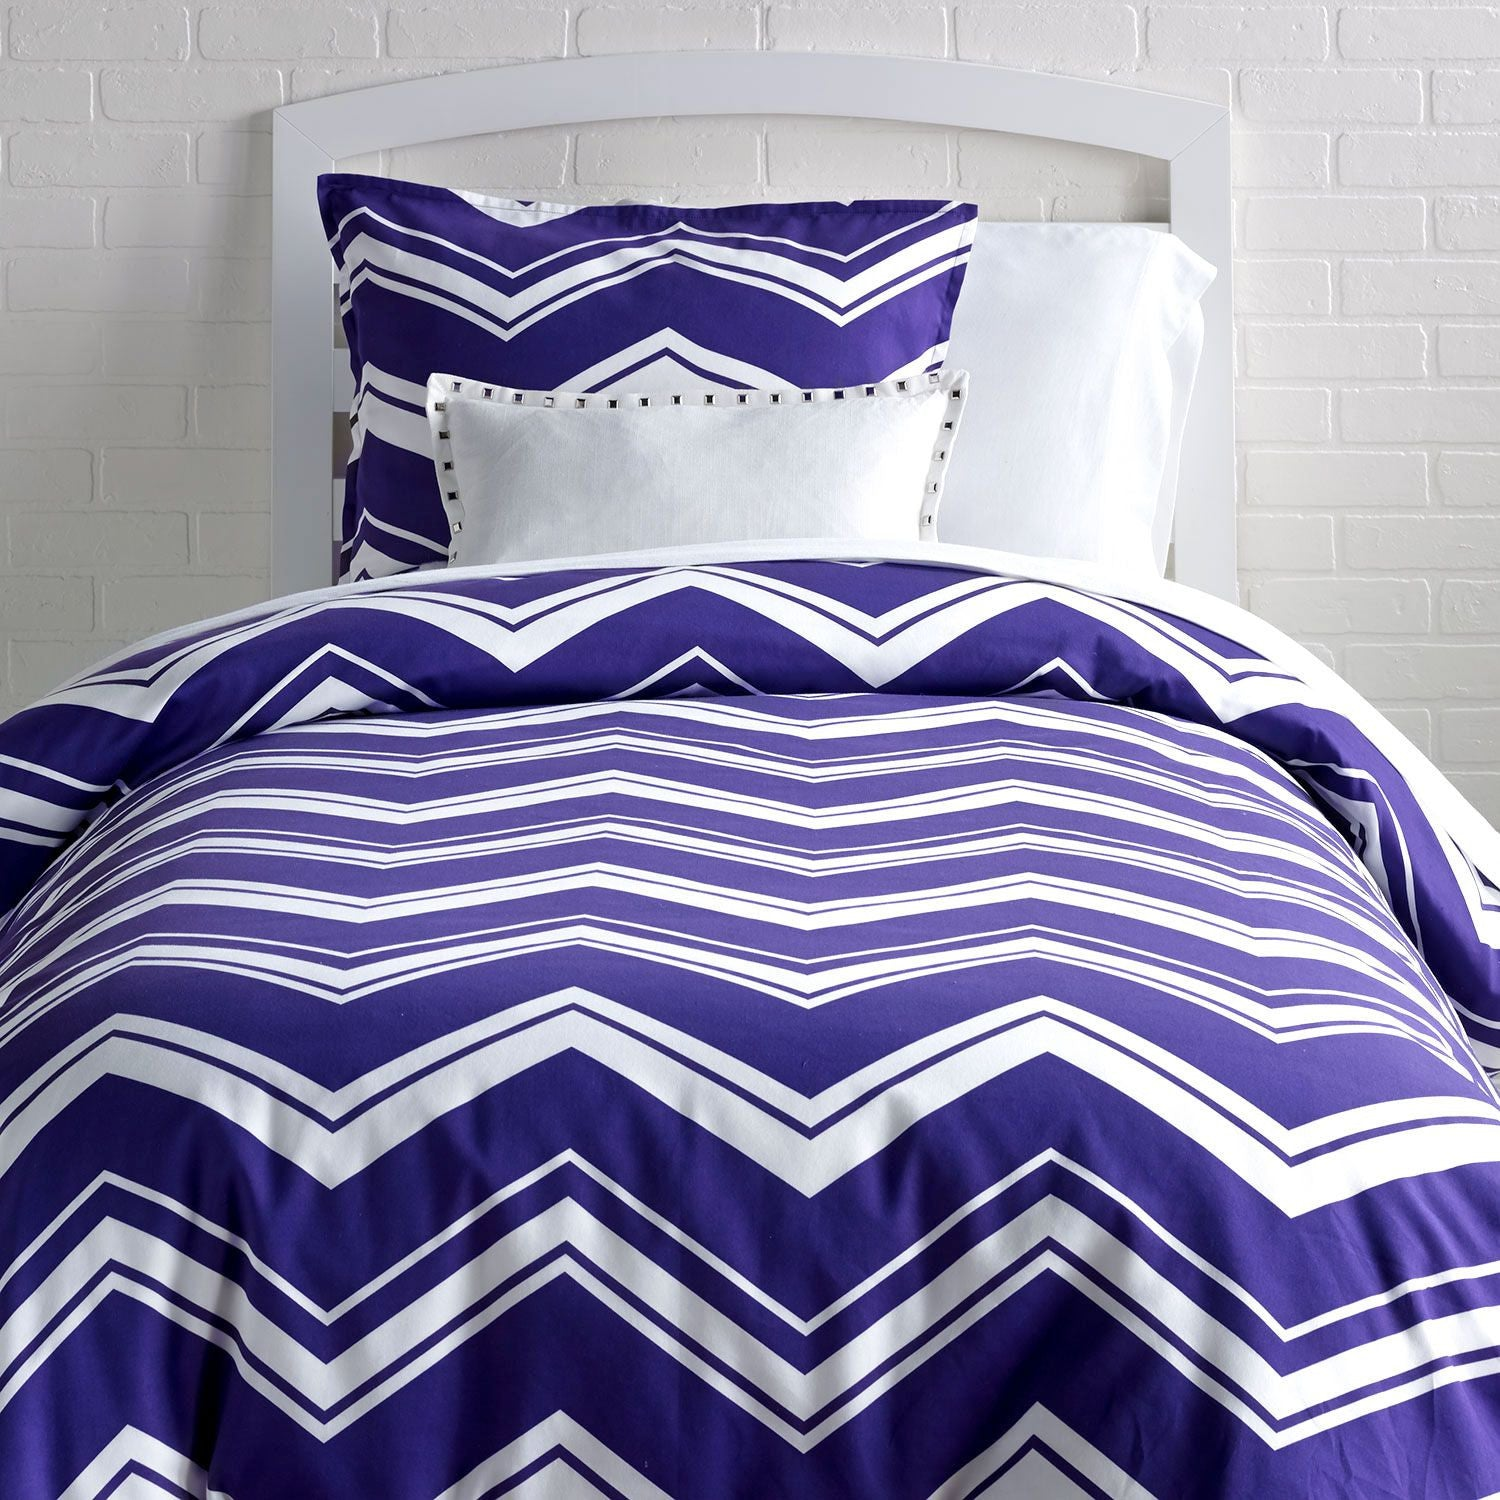 Striped Chevron Duvet Cover and Sham Set - Full/Queen